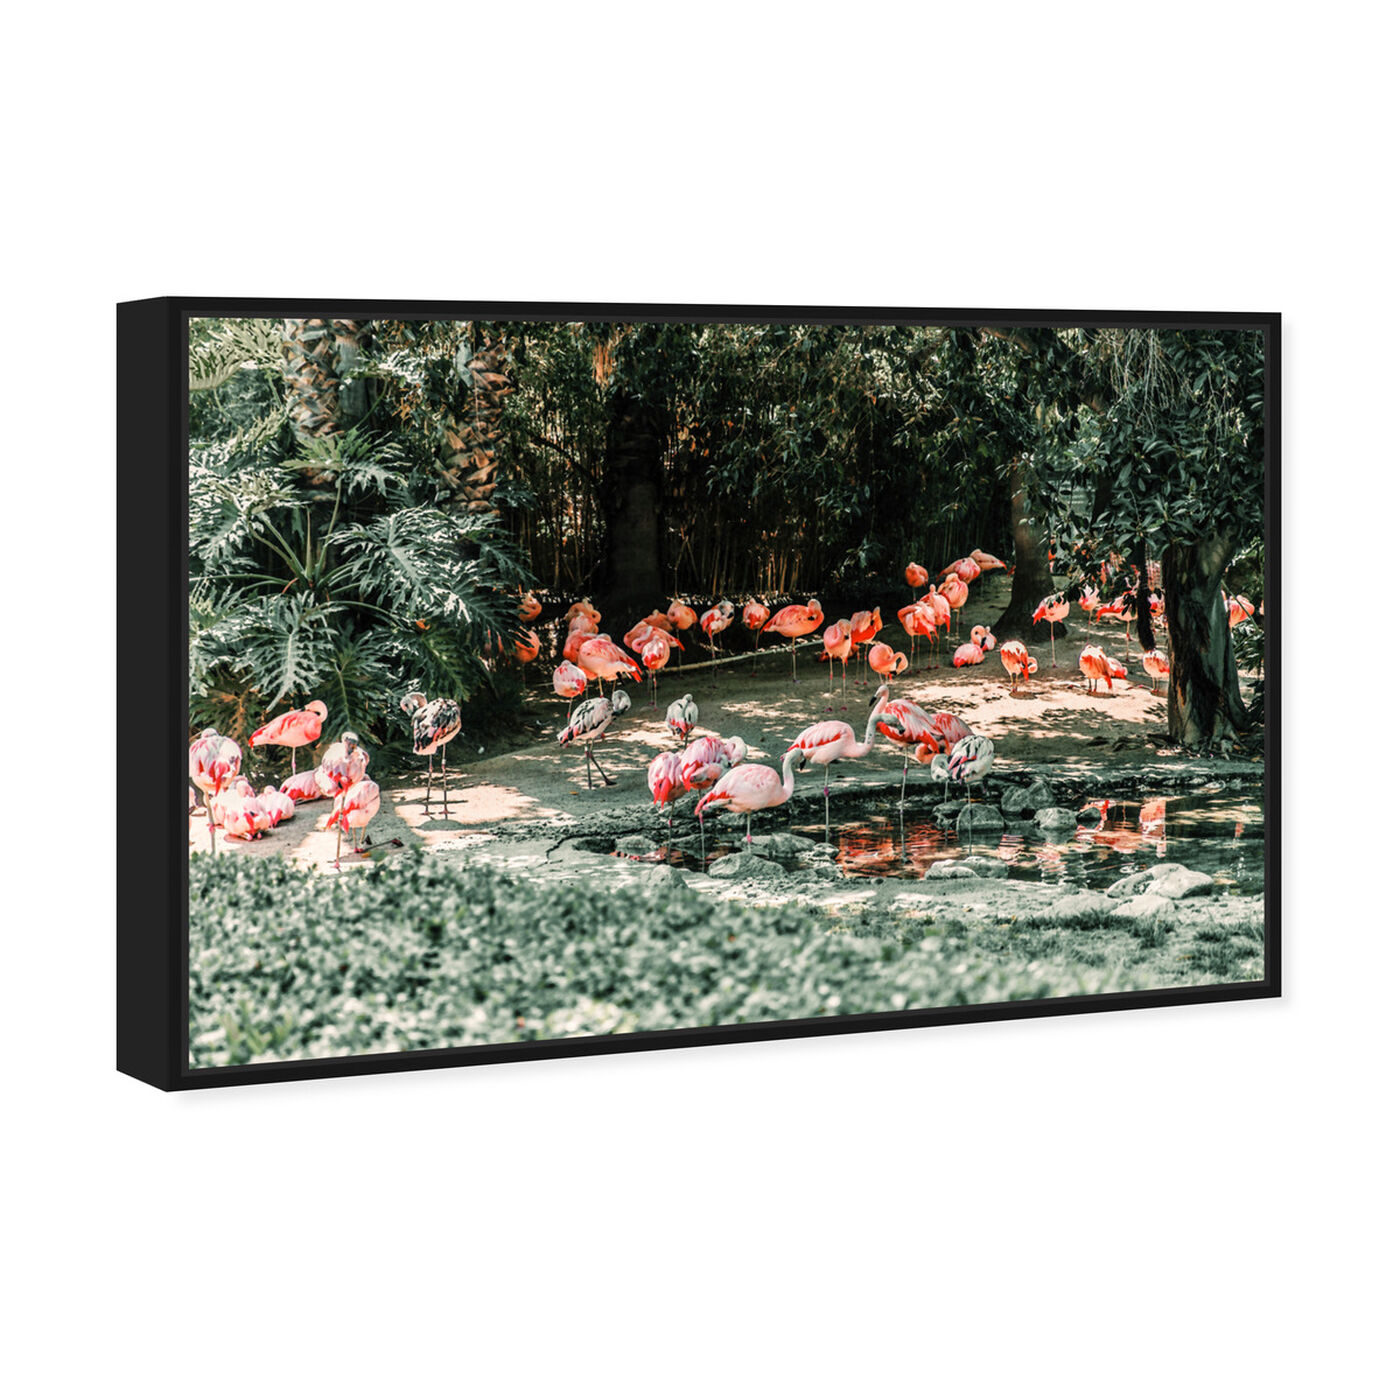 Angled view of Flamingo Gathering featuring animals and birds art.